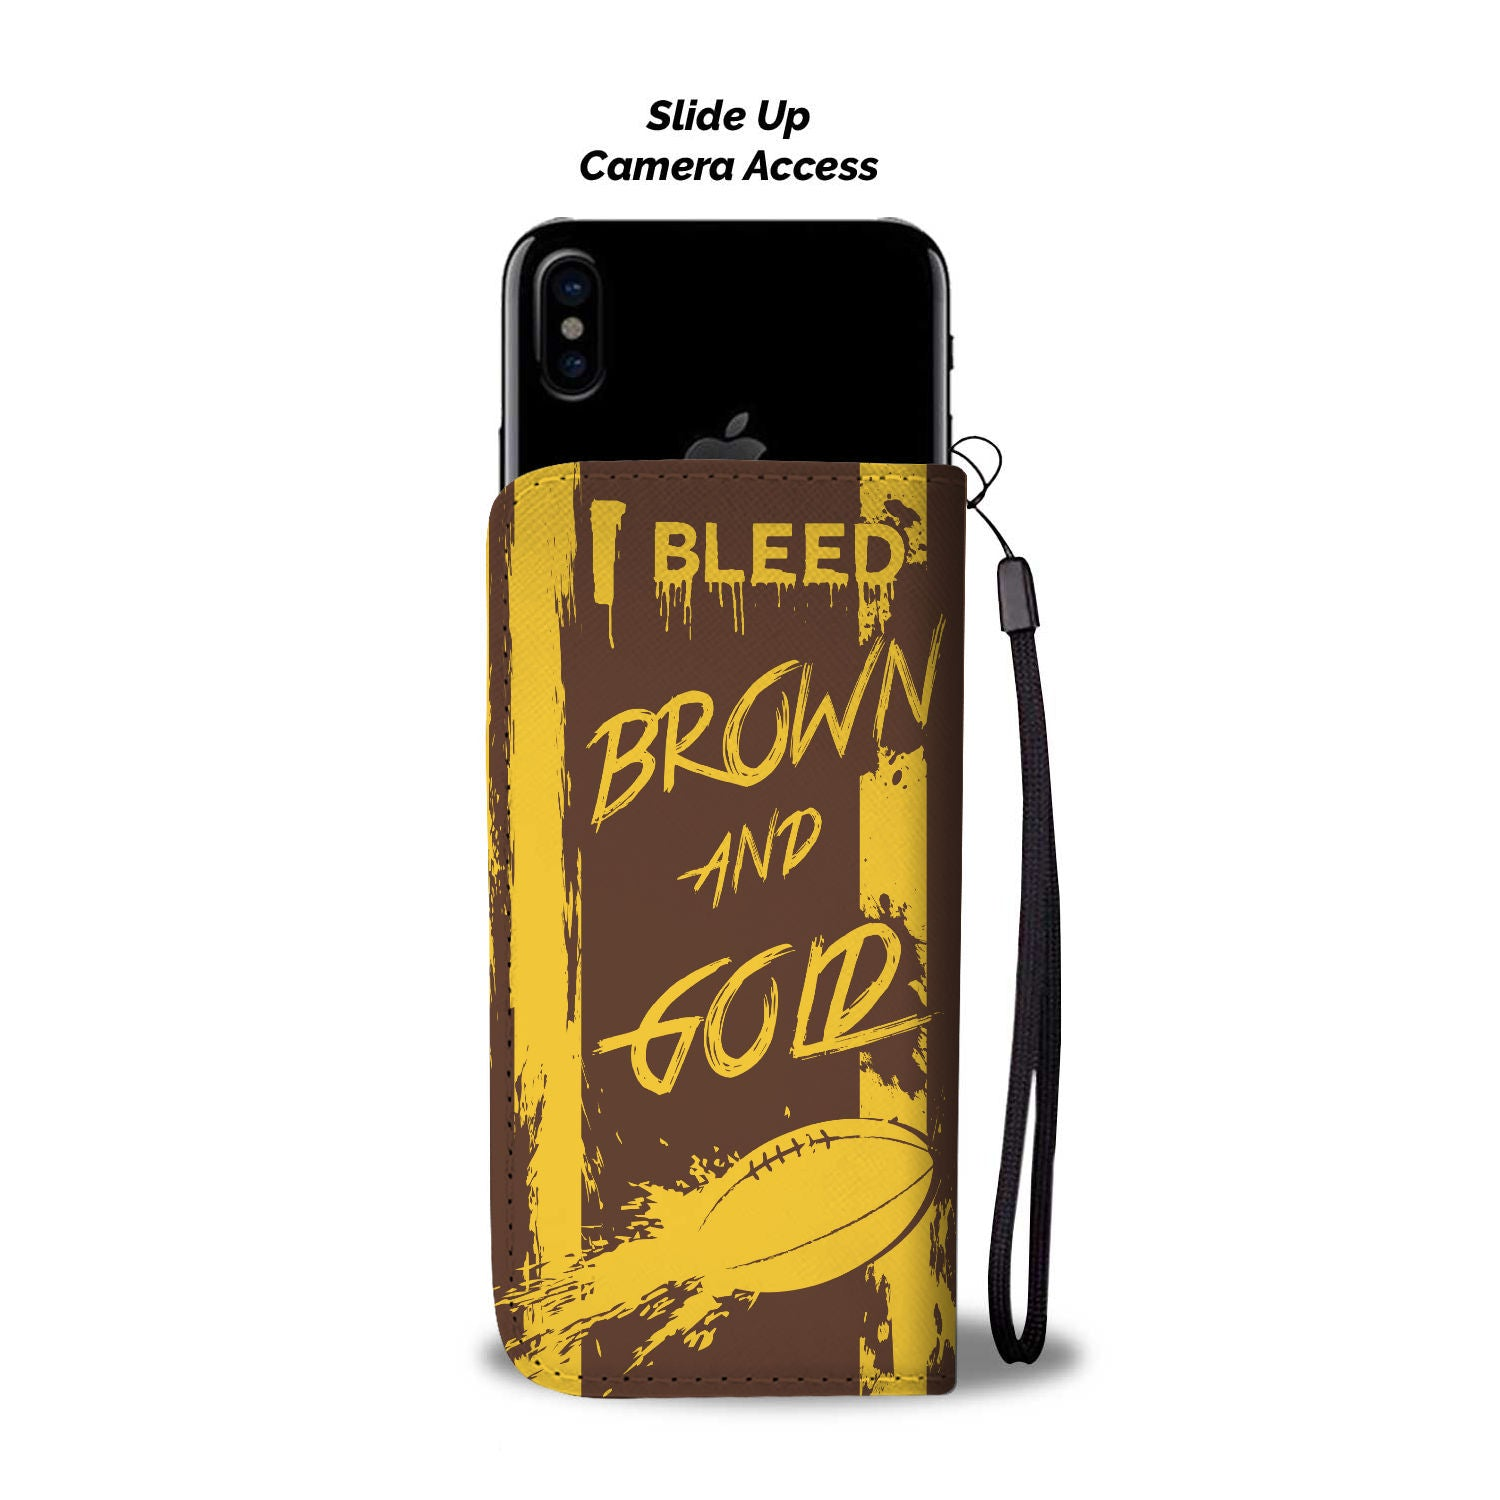 I Bleed Brown and Gold Phone Wallet (Aussie Rules)